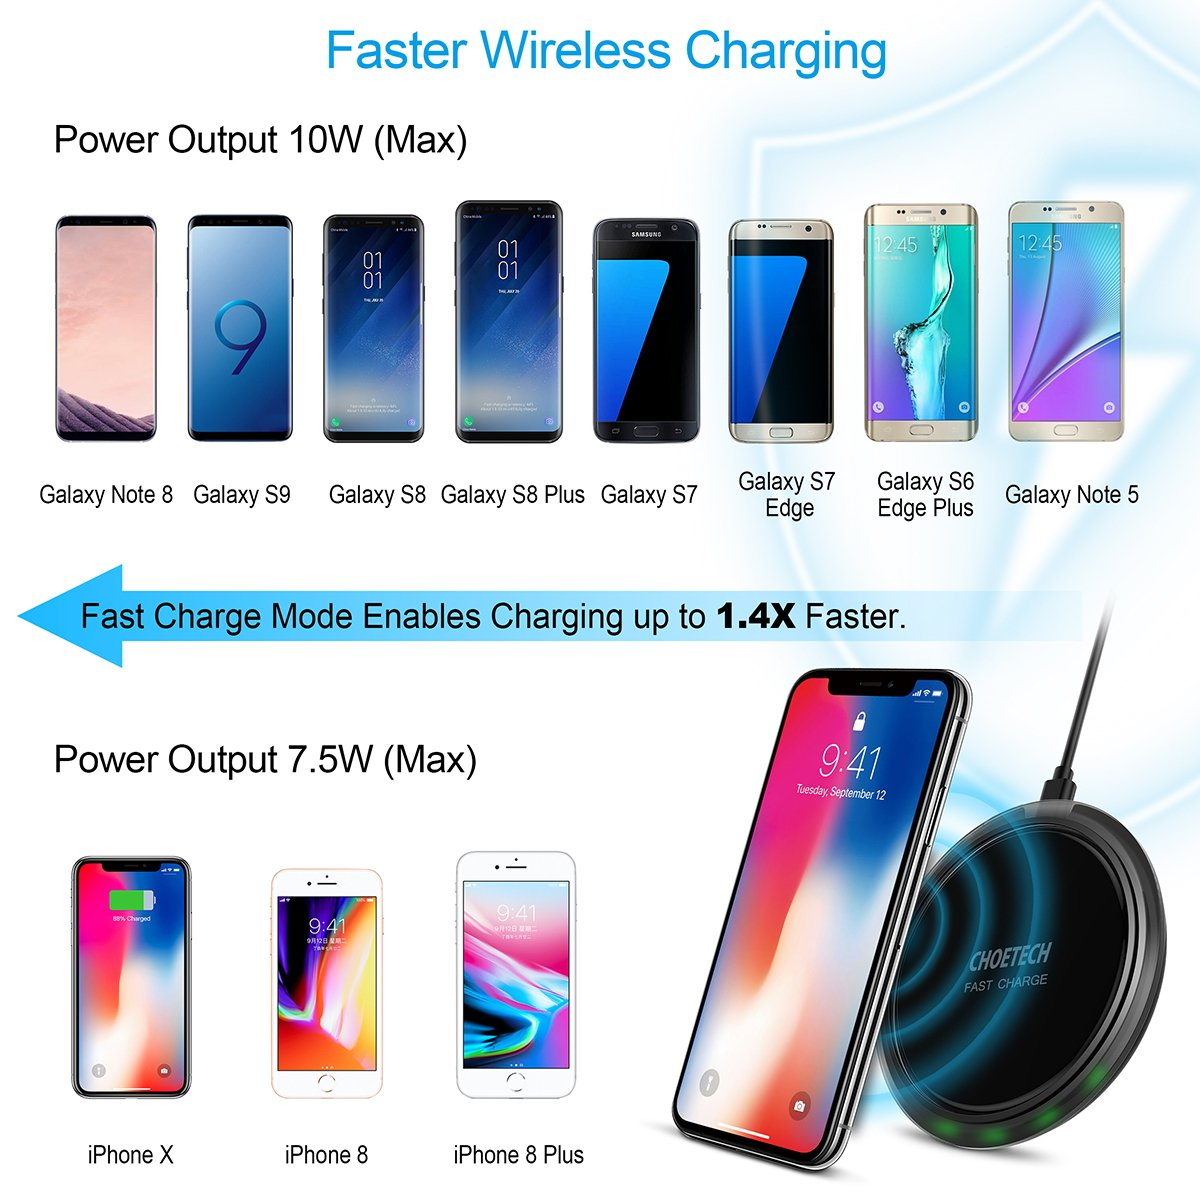 CHOETECH Wireless Charger, 7.5W Qi Fast Wireless Charger Pad Compatible iPhone X/8/8 Plus,10W Fast Charging Compatible Samsung Galaxy S9 S8 S9 Plus Note 8 (QC3.0 AC Adapter Included) by CHOETECH (Image #1)